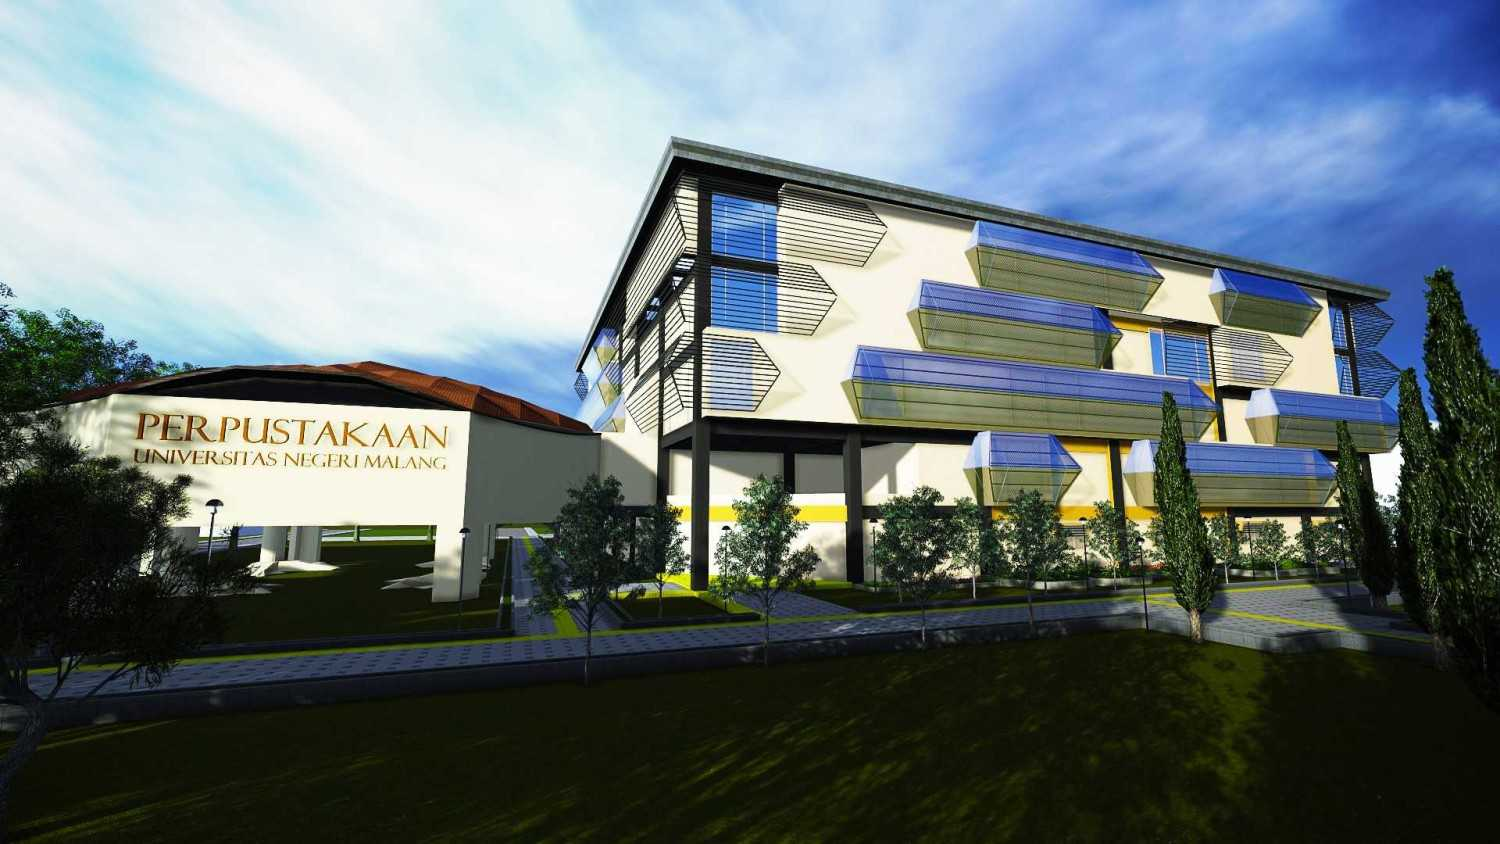 Parades Studio Library Building Malang-Indonesia Malang-Indonesia Front View Kontemporer 12357